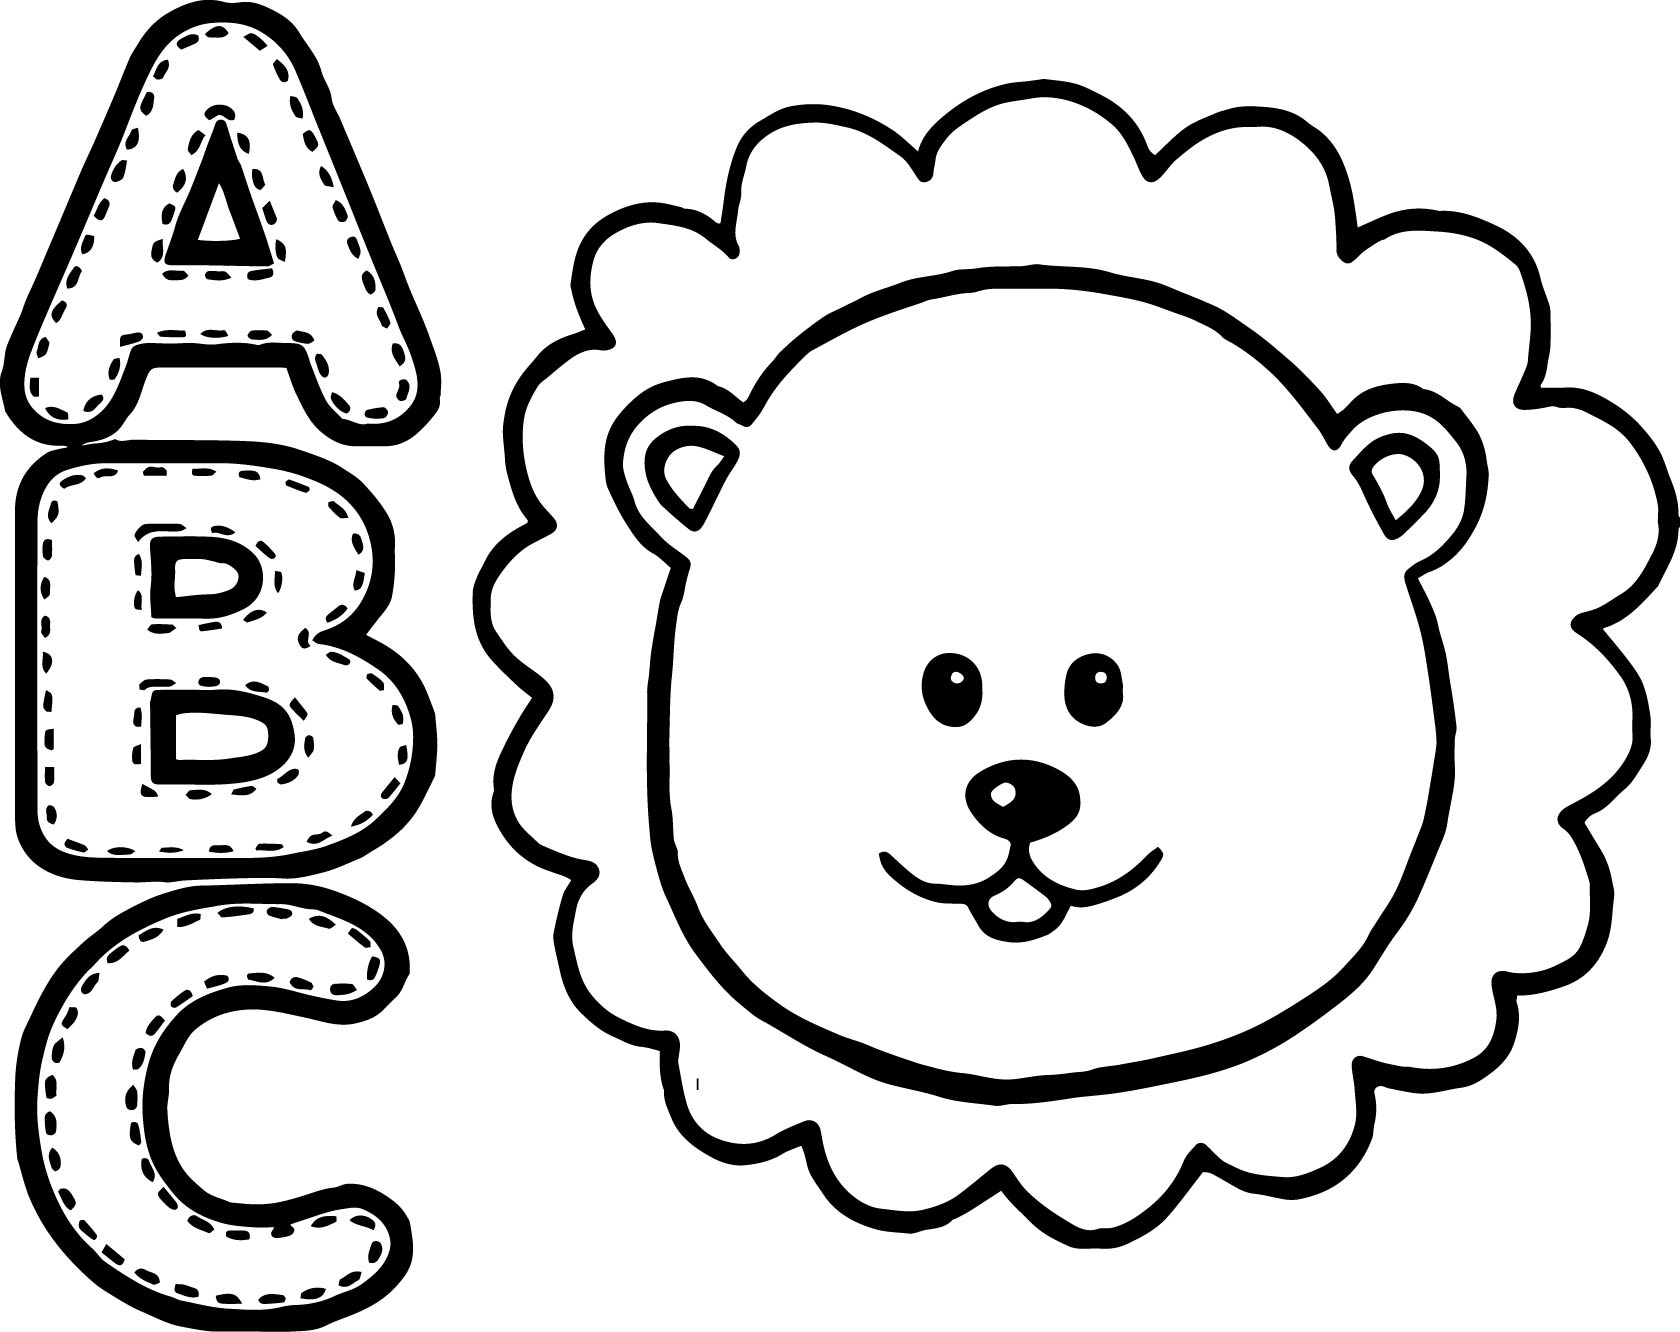 Abc Coloring Pages - abc animal lion coloring page